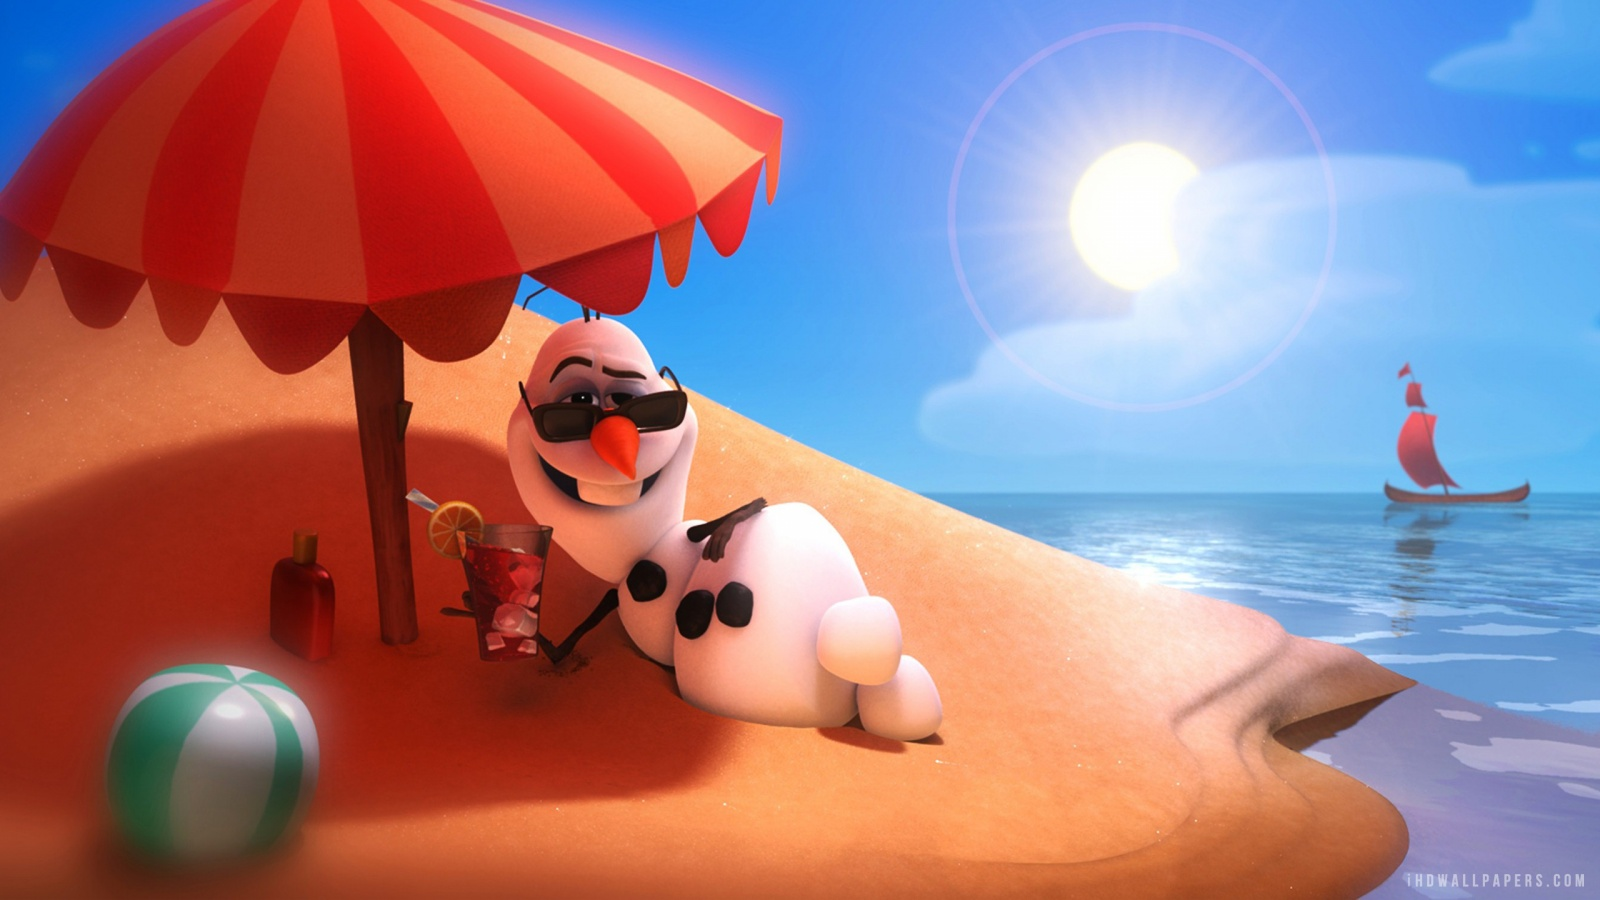 Disney Frozen Olaf HD Wallpaper   iHD Wallpapers 1600x900